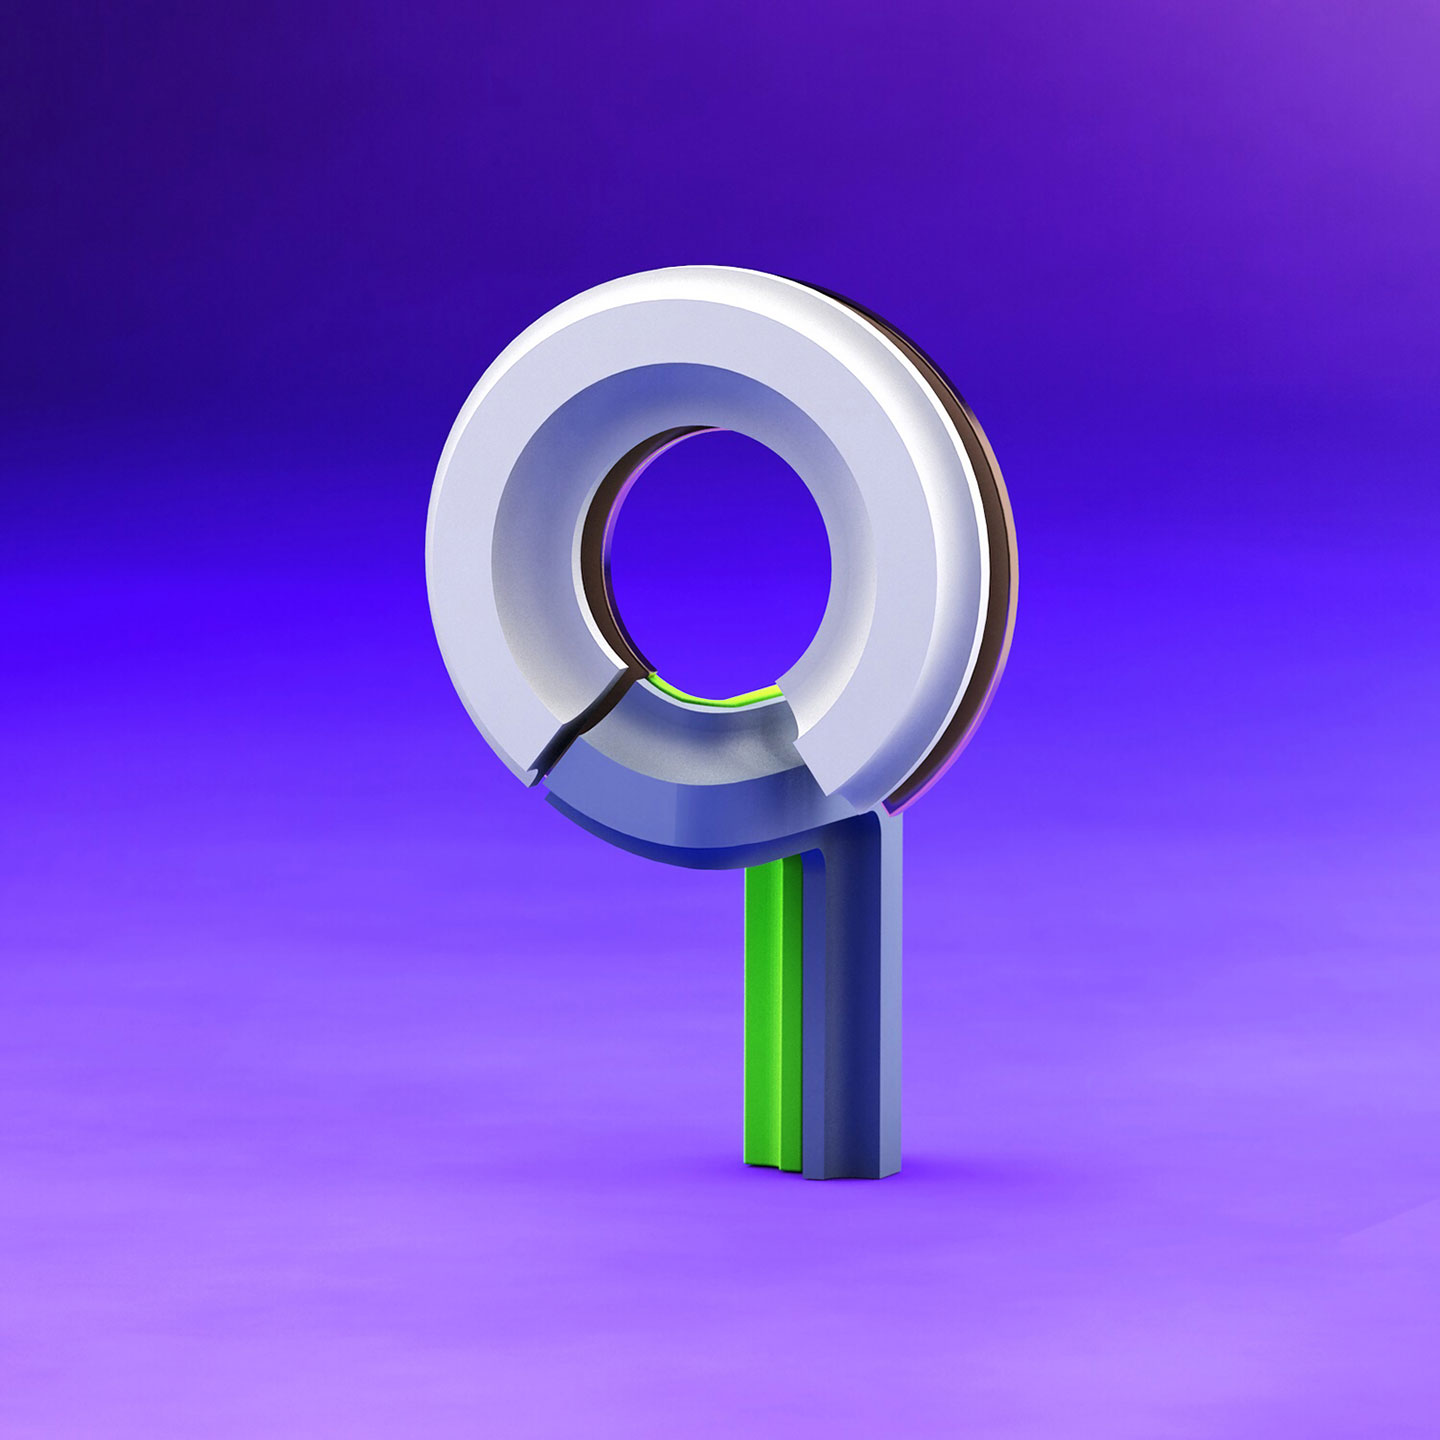 36 Days of Type 2017 - 3D number 9 design visual.